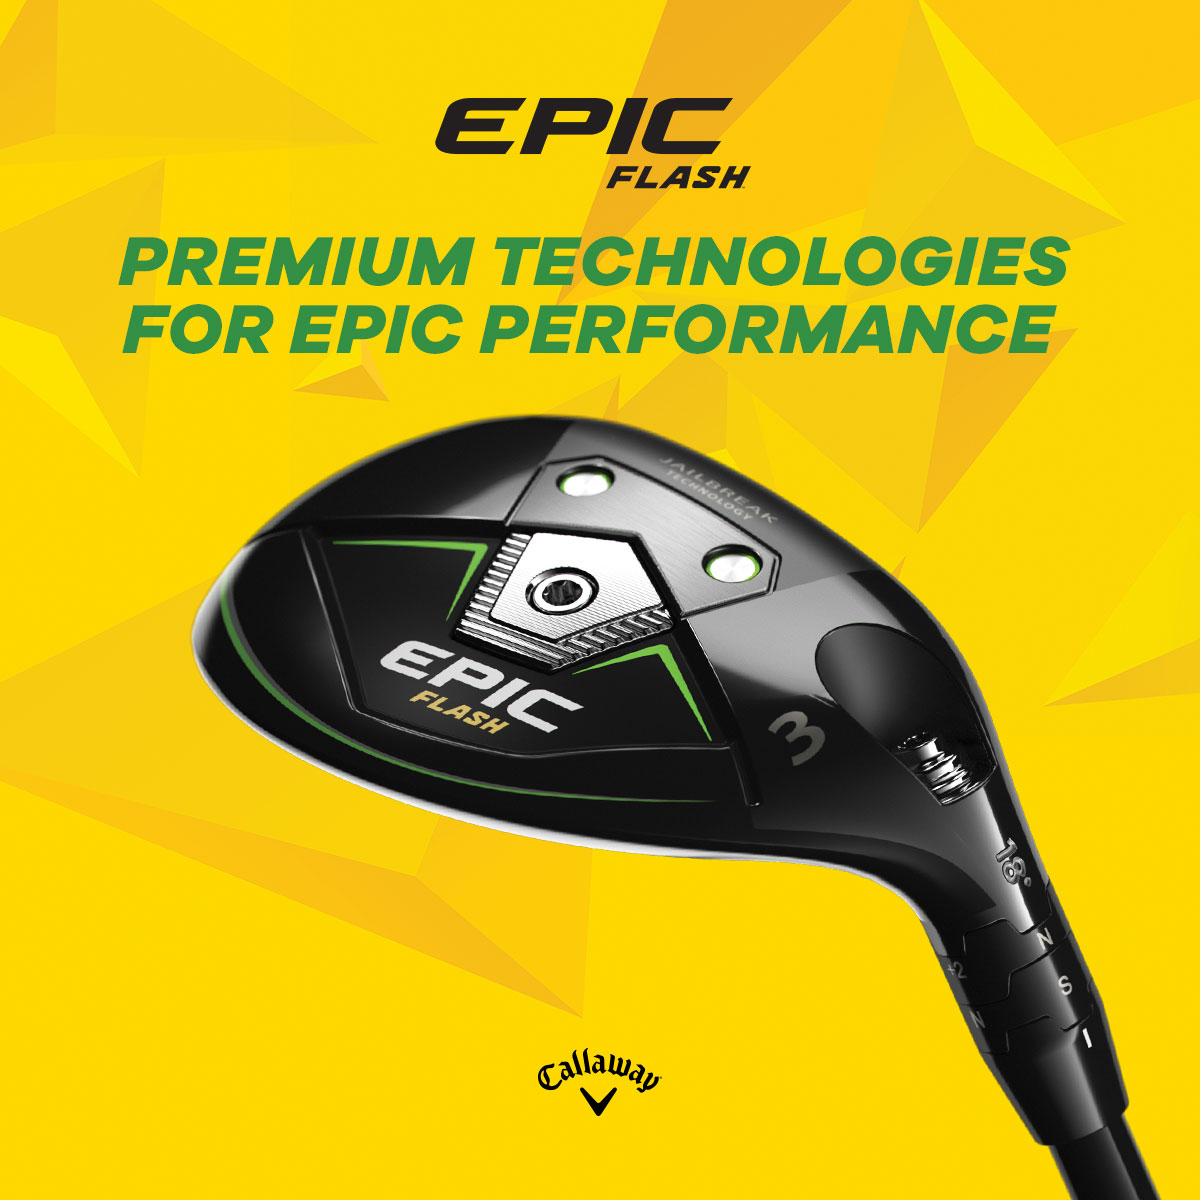 Callaway Epic Flash Hybrid banner image for link to RBG